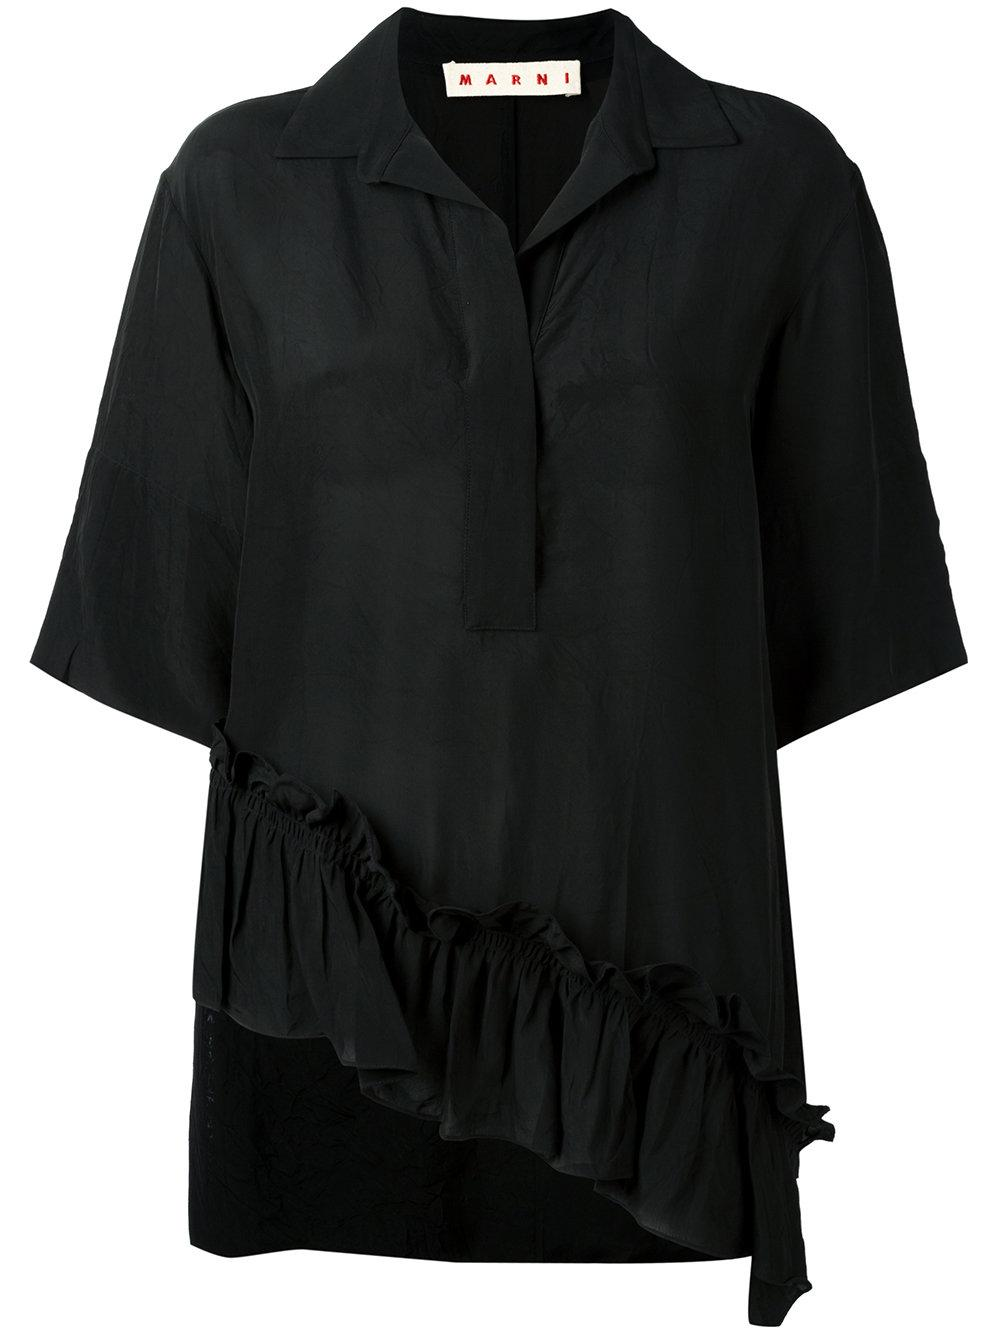 Available In Hunter, Black, Mauve, And Ivory Collared Button Adjustable Straps Ruffle Sleeve % Polyester.